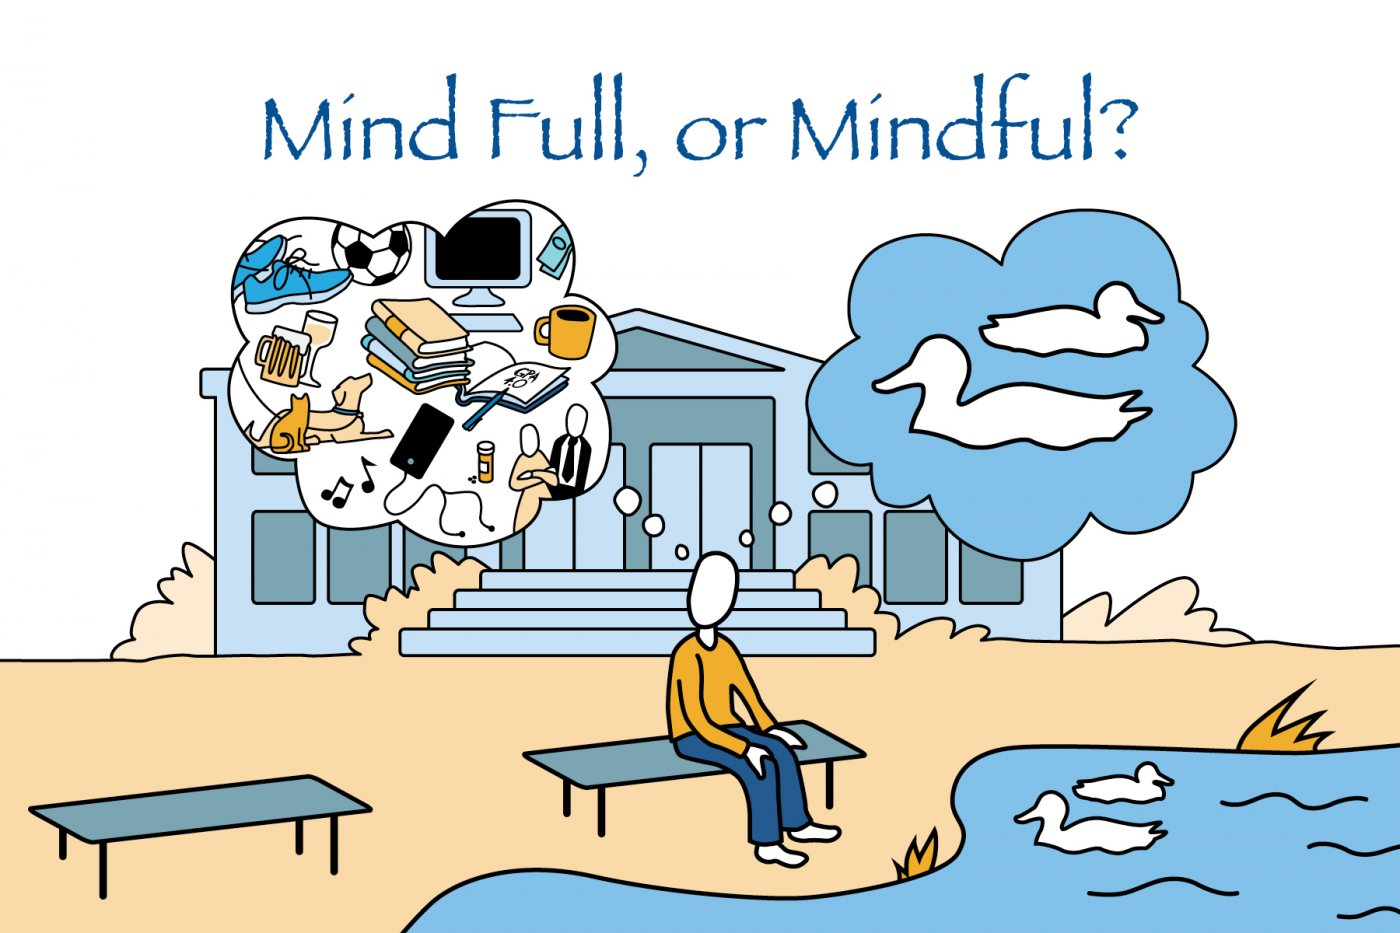 Mind Full or Mindfull college mindfulness illustration